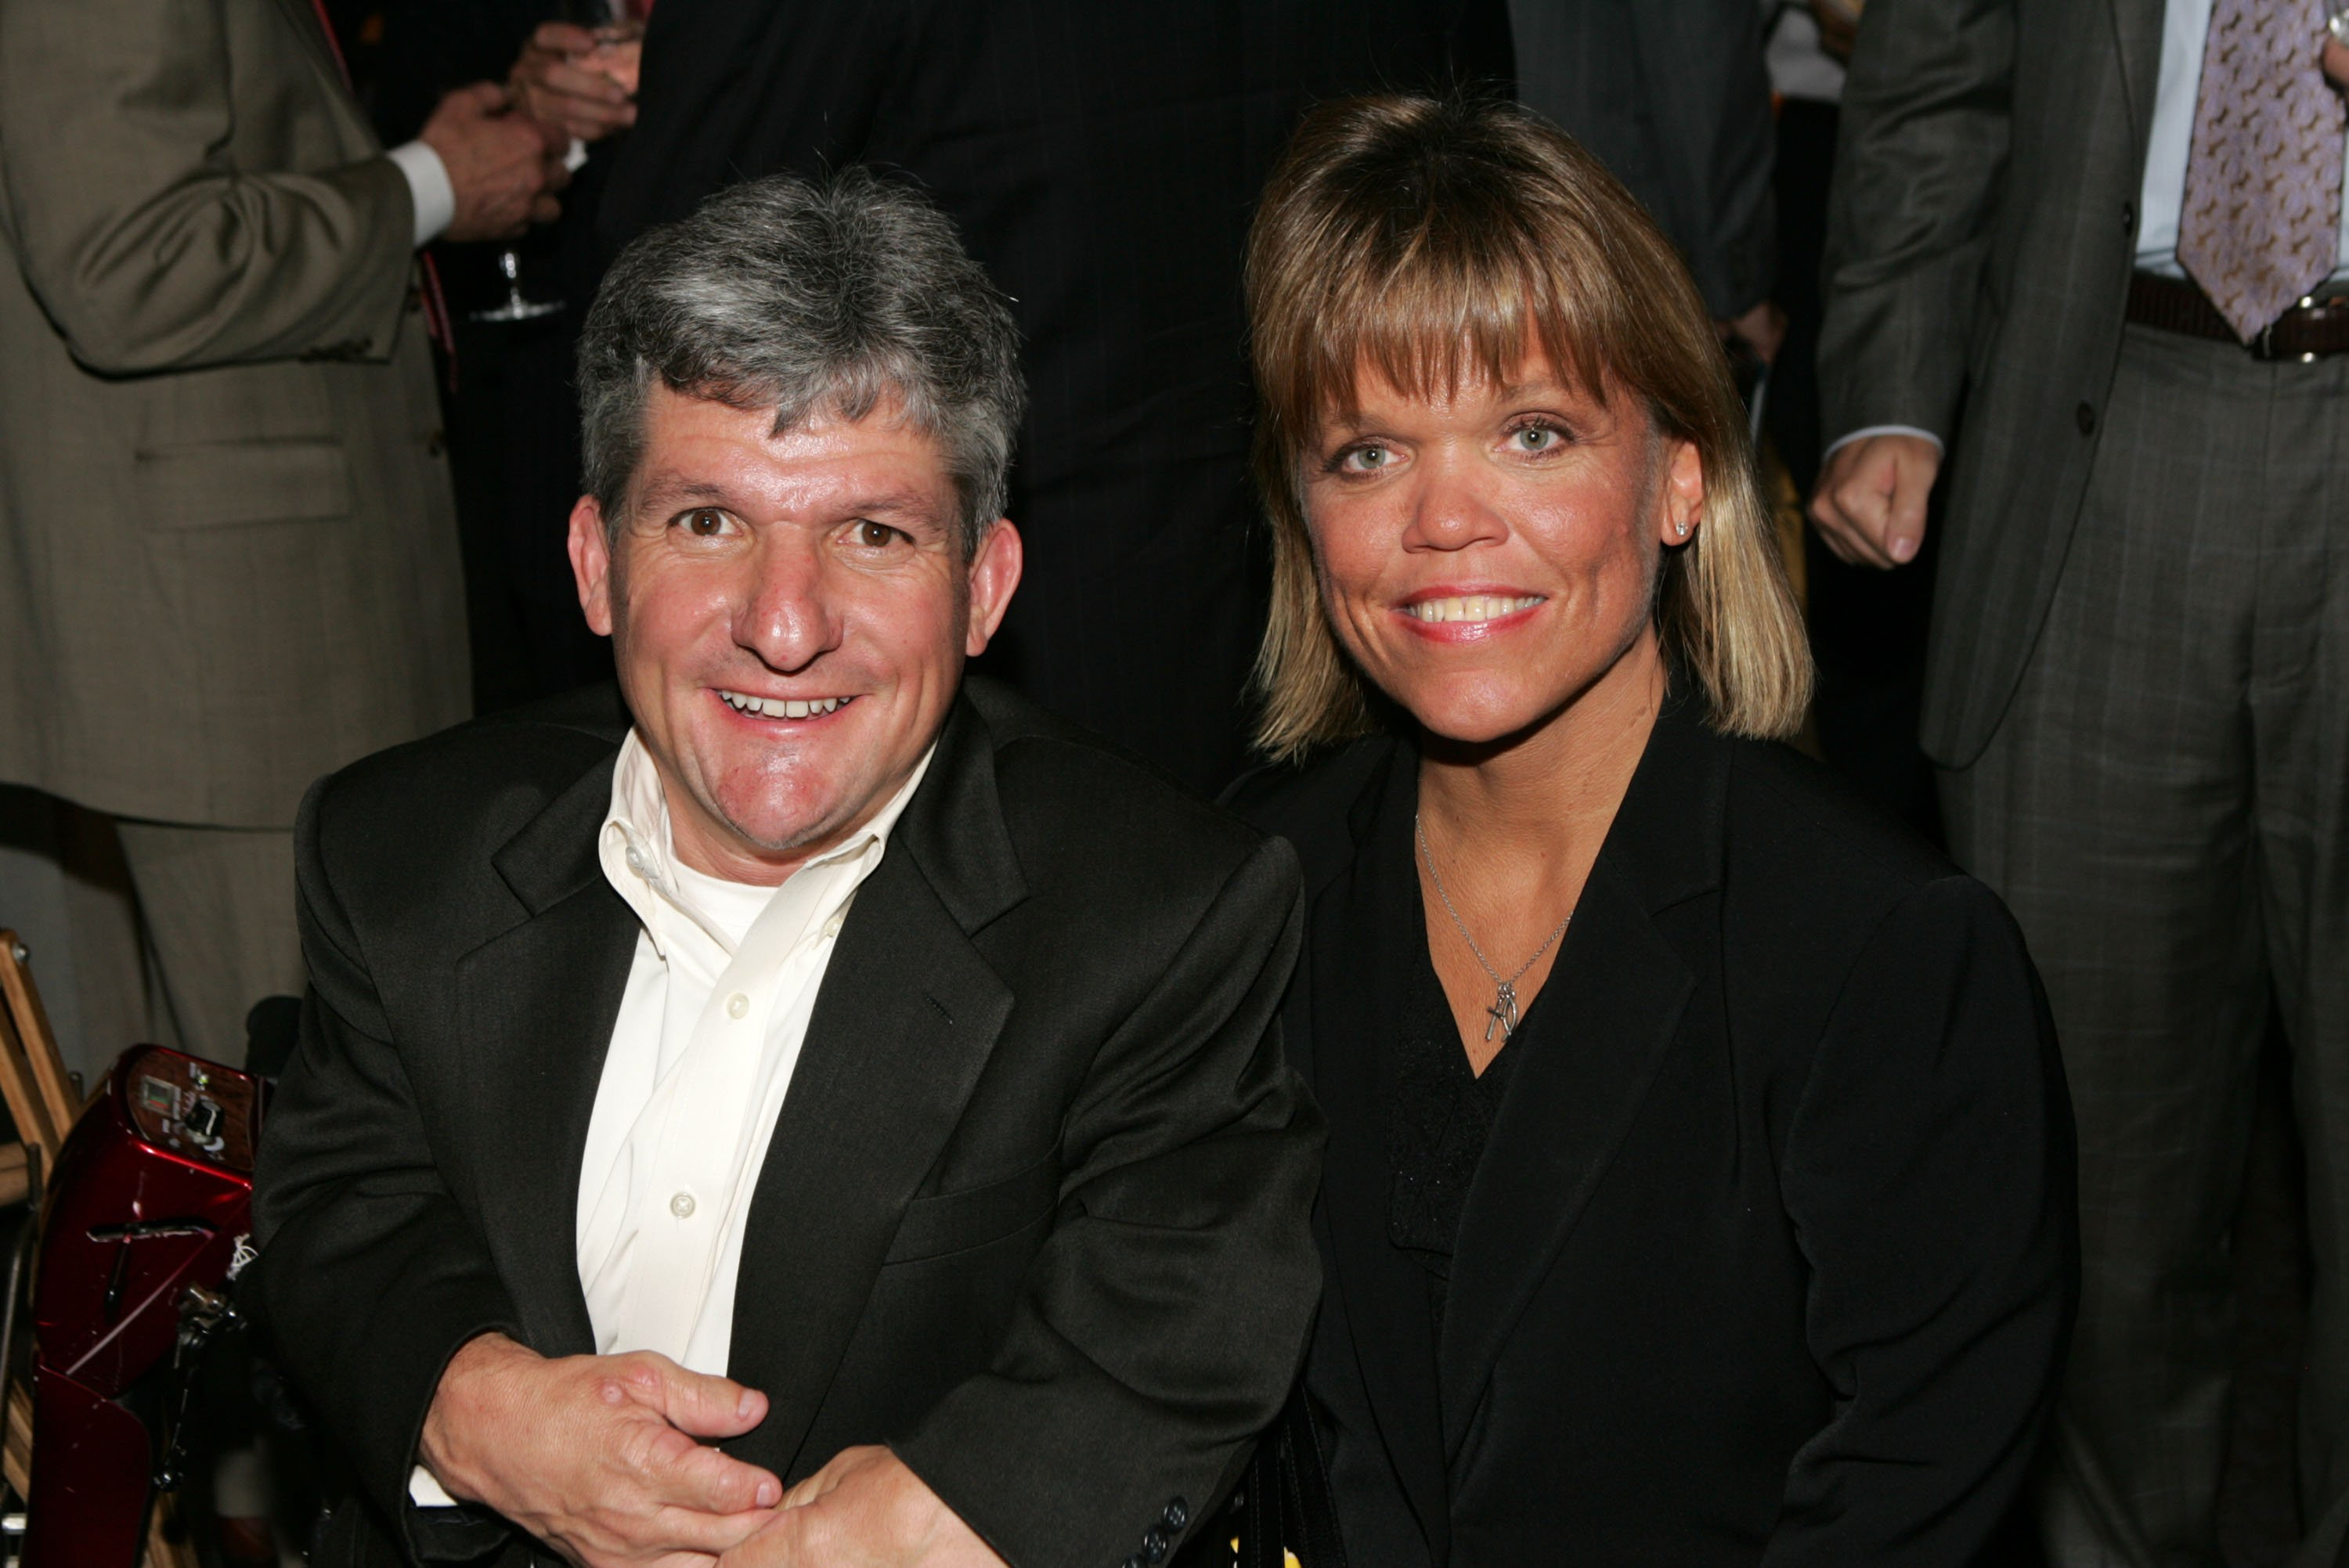 Matt and Amy Roloff attend the Discovery Upfront Presentation NY - Talent Images at the Frederick P. Rose Hall on April 23, 2008, in New York City. | Source: Getty Images.